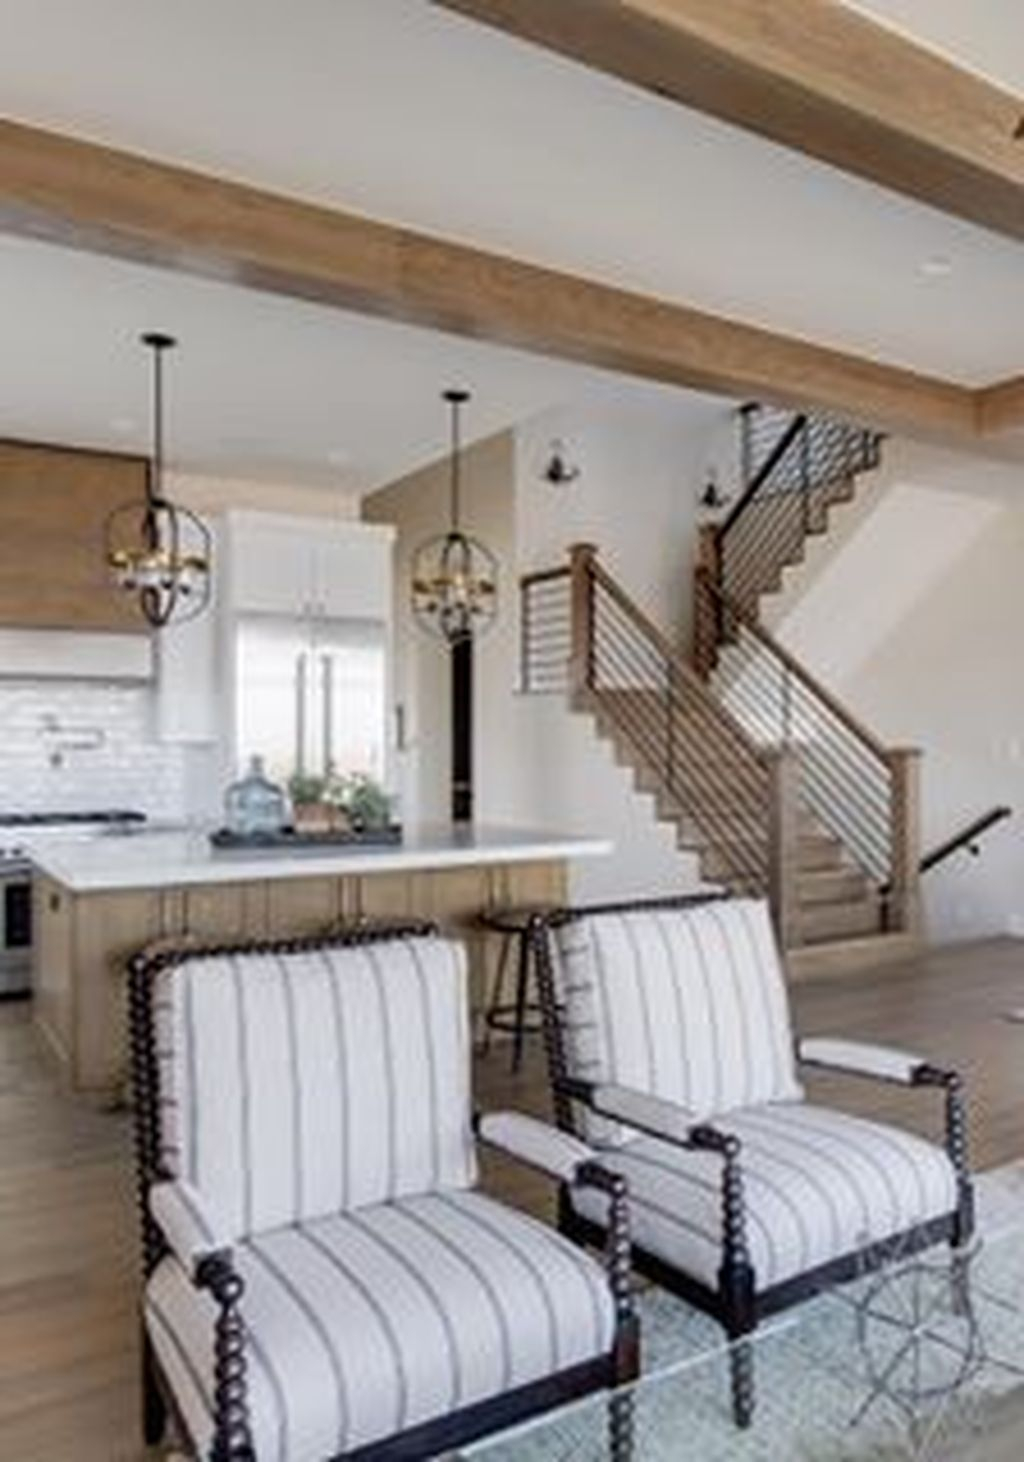 Adorable Home Interior Remodel Design Ideas To Try Asap 20